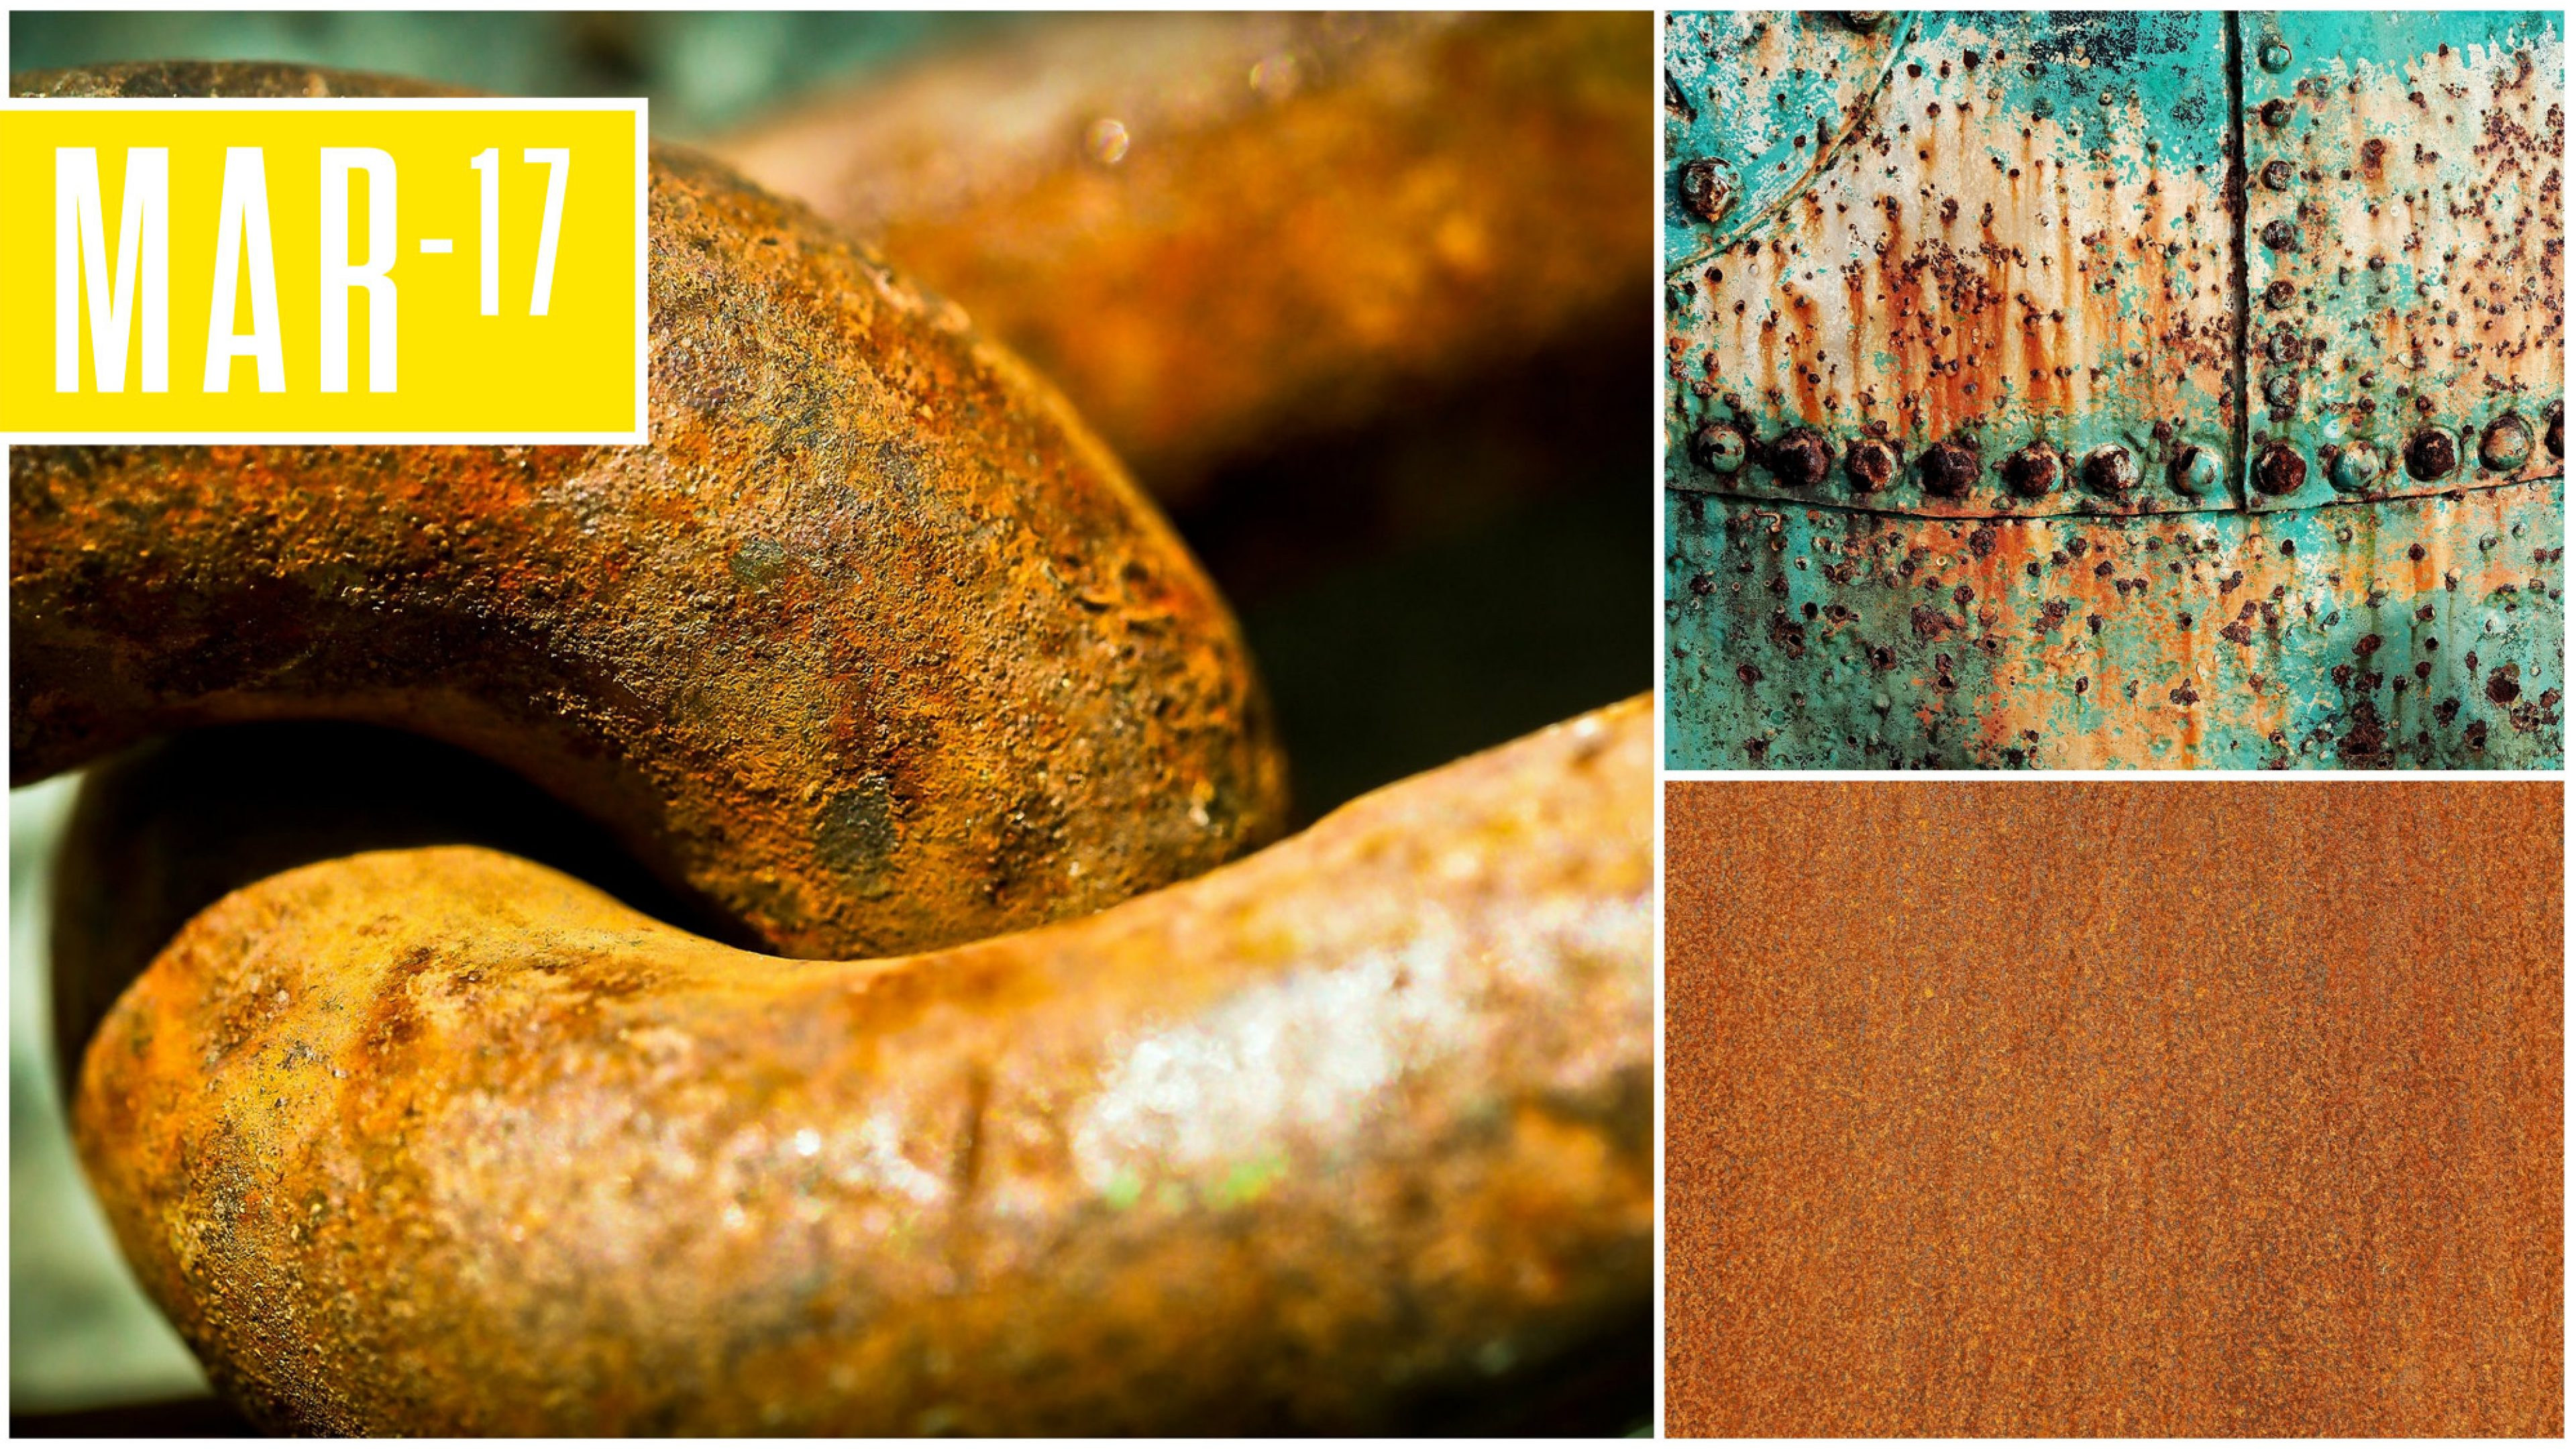 Generic images of rust and corrosion